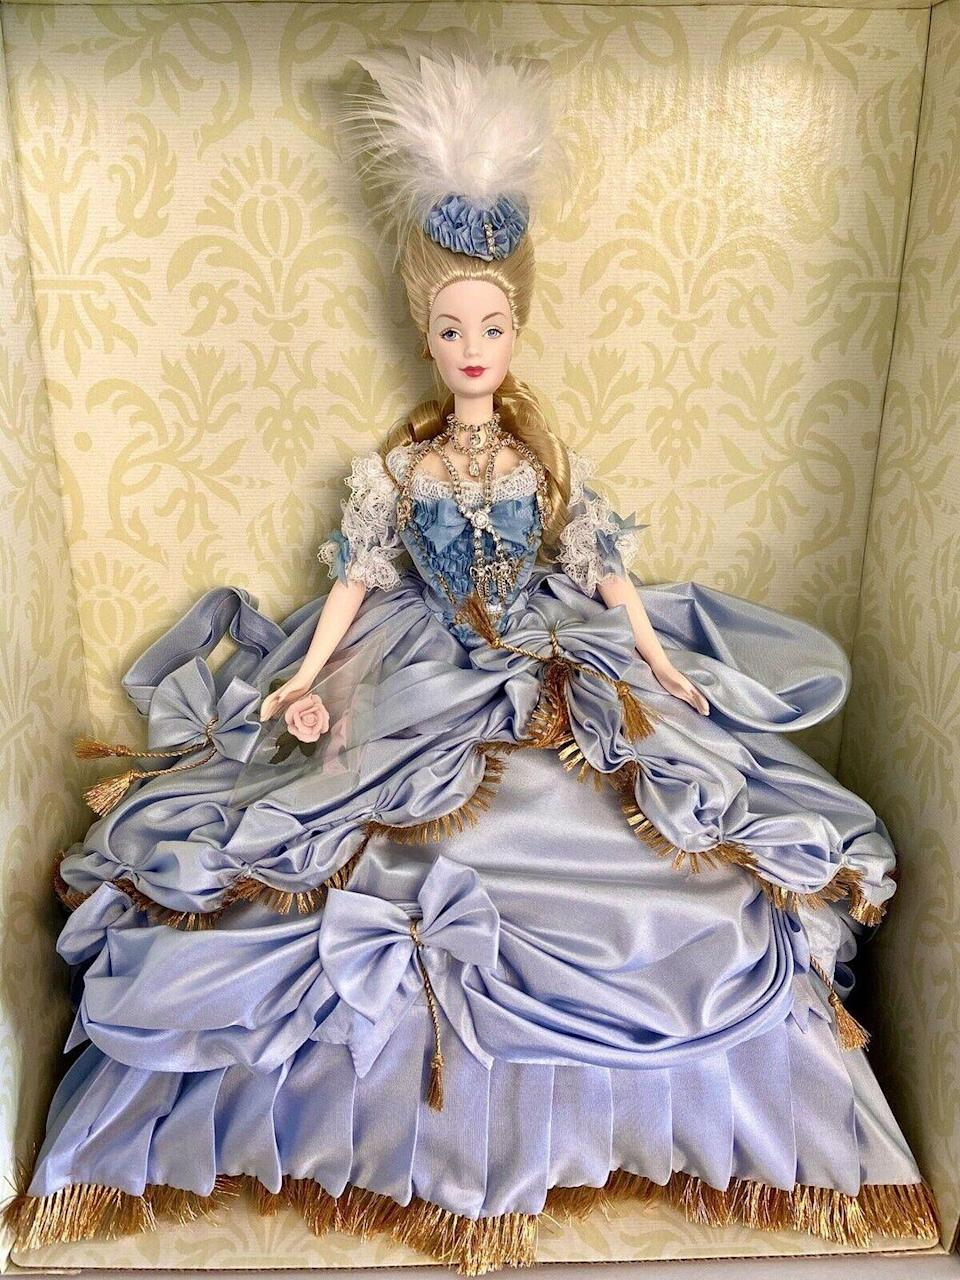 "<p>This limited-edition Marie Antoinette doll is extravagant, and I wouldn't have it any other way. Her shoes aren't plastic but porcelain for crying out loud! The one-of-a-kind doll is worth <a href=""https://www.ebay.com/itm/NRFB-Marie-Antoinette-Barbie-Doll-Deluxe-Limited-Woman-of-Royalty-Gold-Label/254768019313?hash=item3b515b7771:g:gJMAAOSw8vpfffr2"" rel=""nofollow noopener"" target=""_blank"" data-ylk=""slk:some serious dough"" class=""link rapid-noclick-resp"">some serious dough</a>, ringing in at $1,100. </p>"